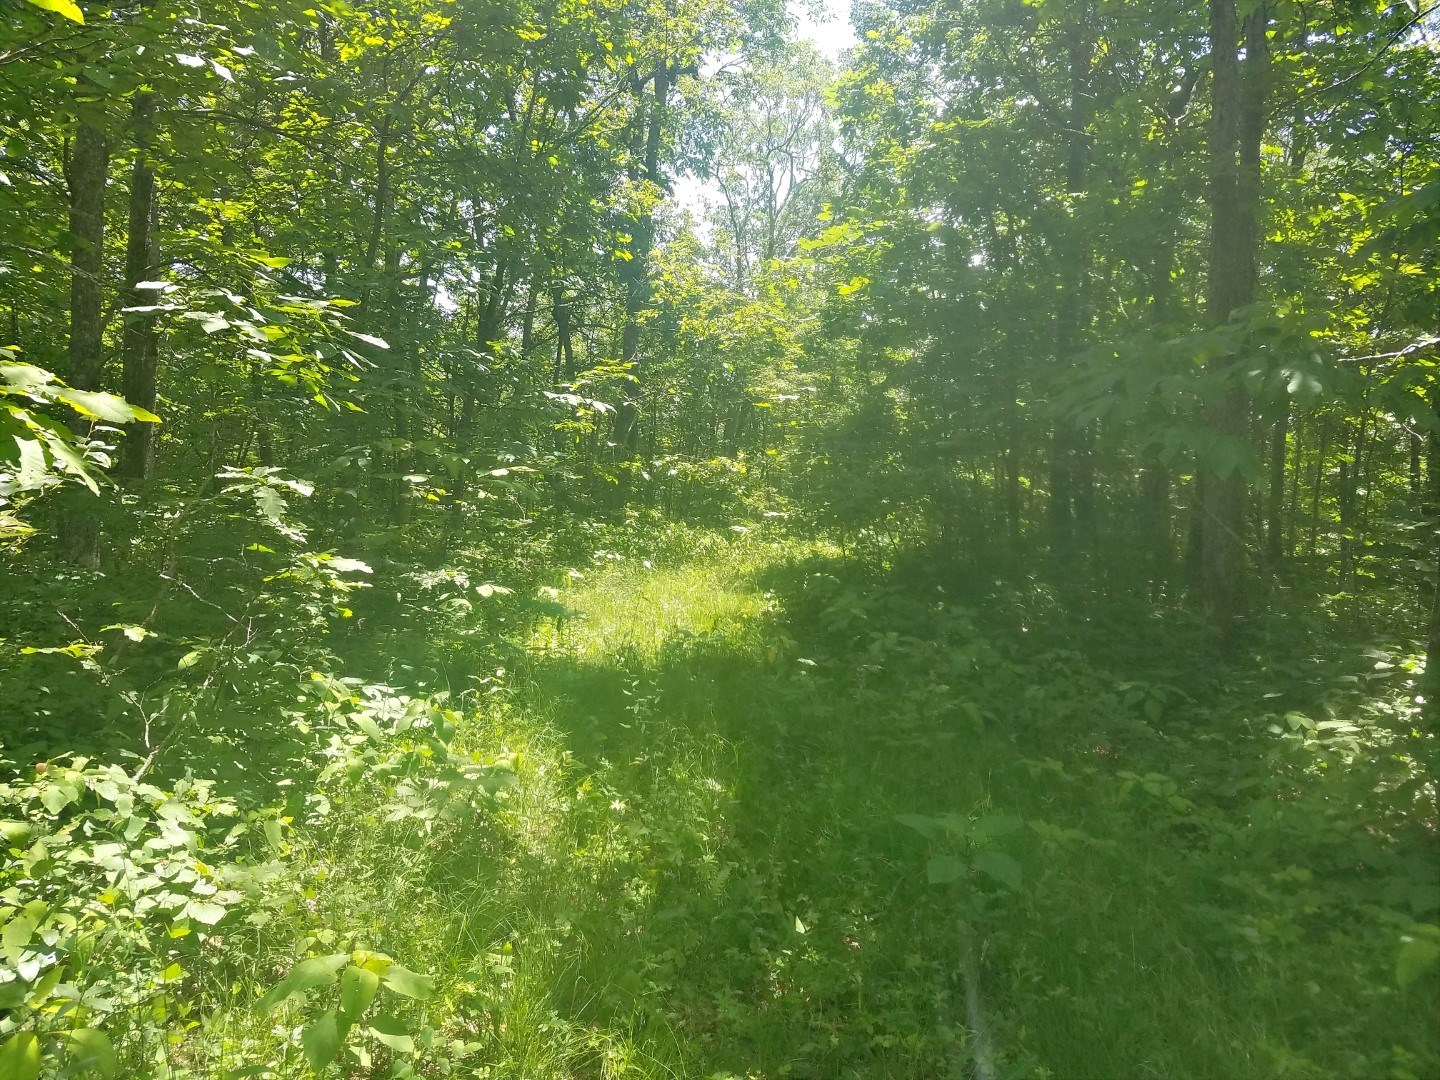 35 Acres Wooded Property For Sale Bland County, VA